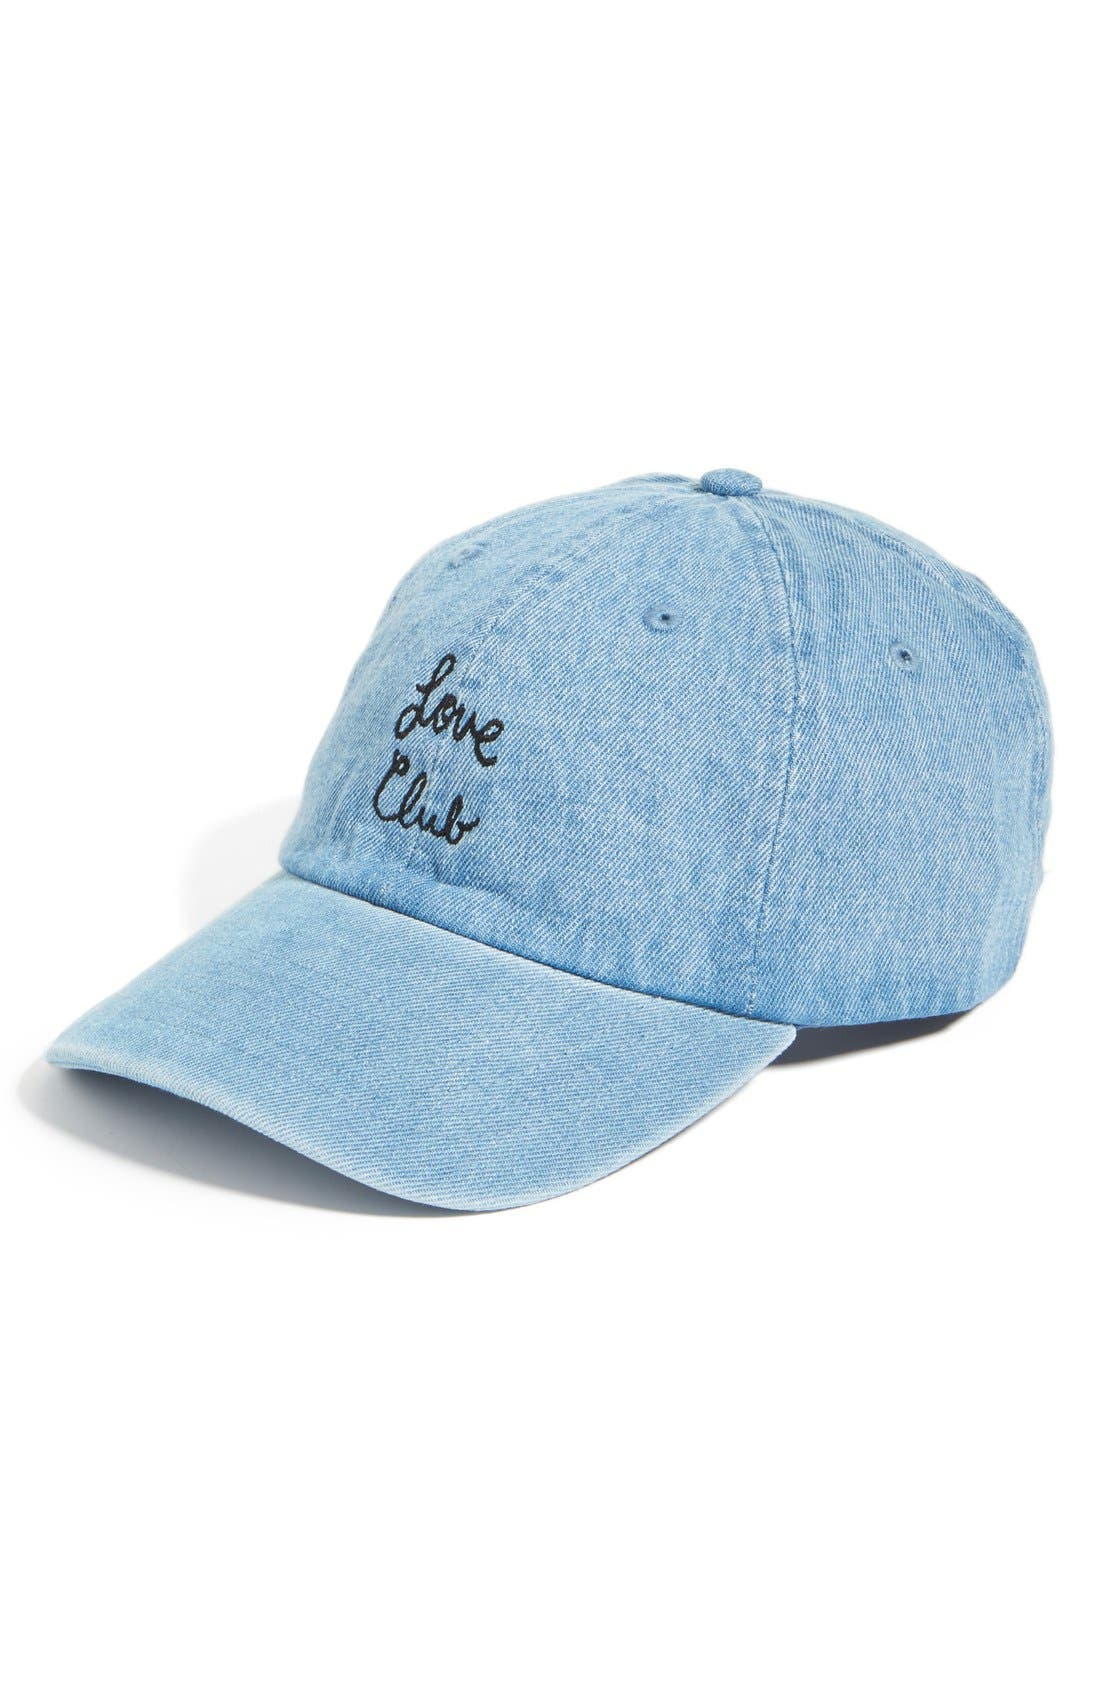 Alternate Image 1 Selected - The Style Club Love Club Baseball Cap